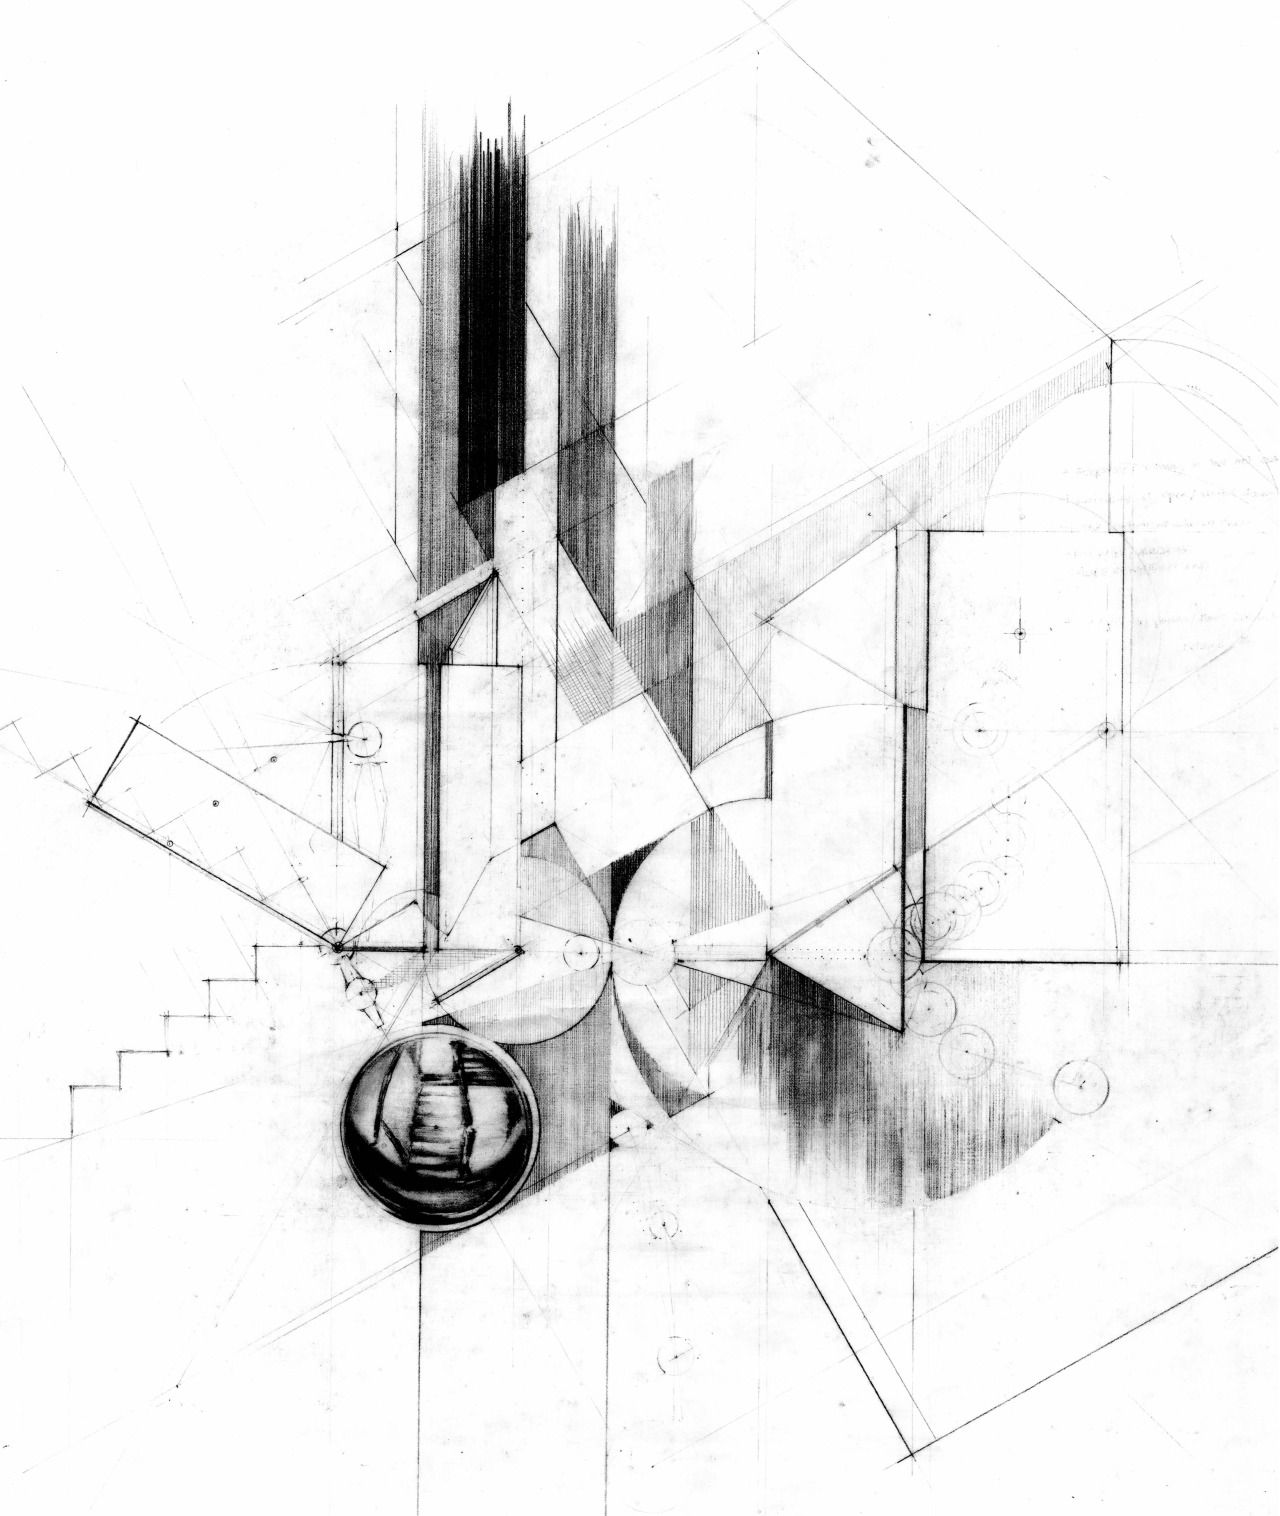 1280x1516 Drawing Architecture Hana Leah Bittner, So Familiar